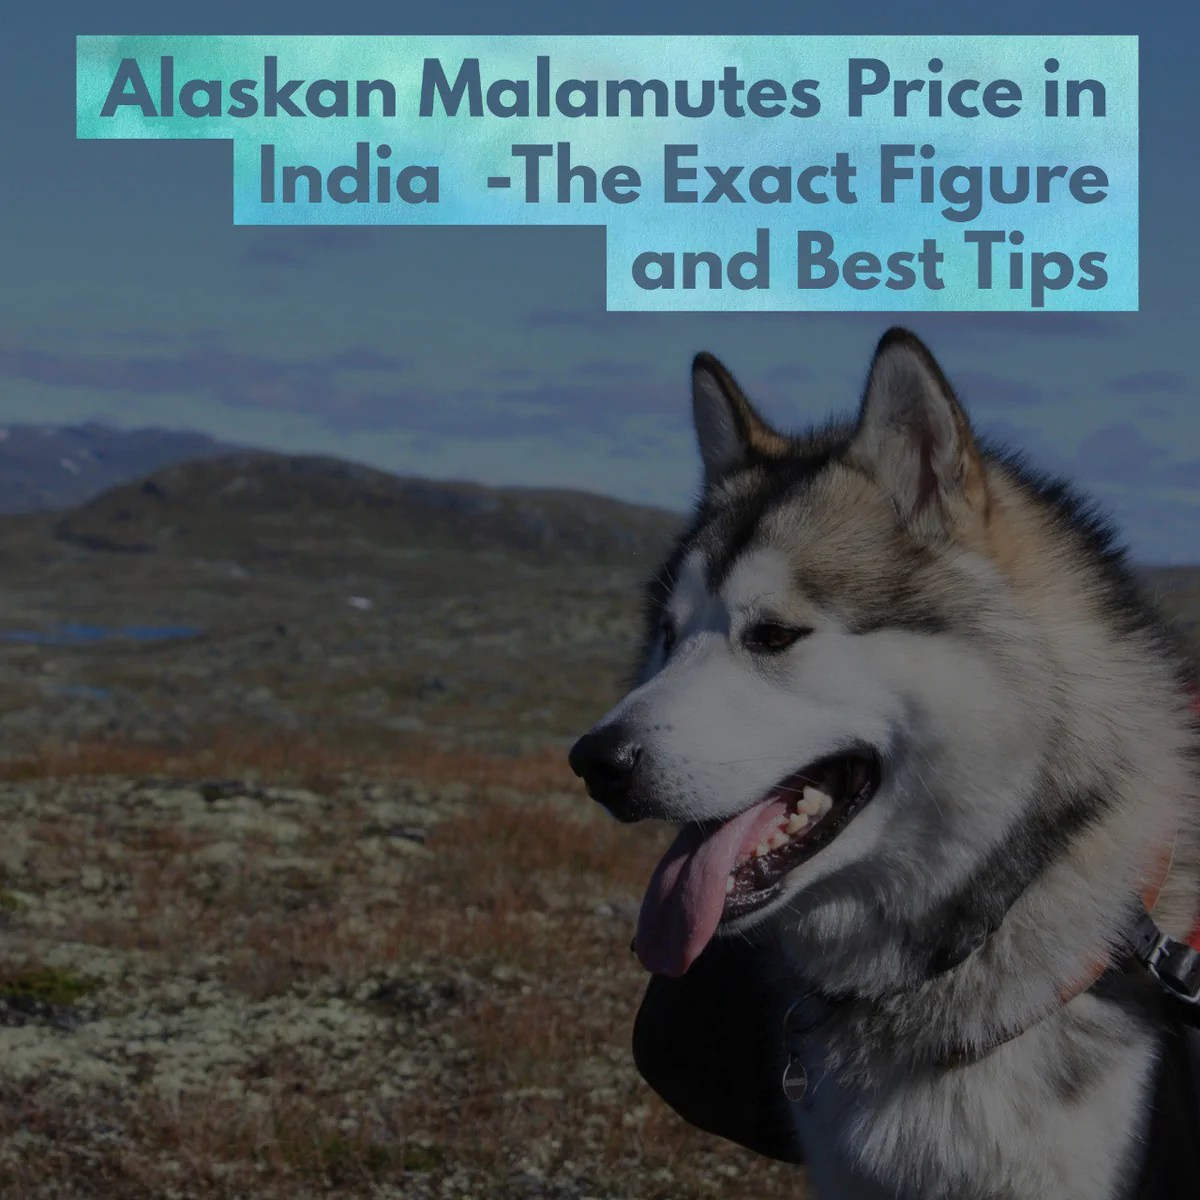 Husky Price Alaskan Malamutes Price In India The Exact Figure And Best Tips